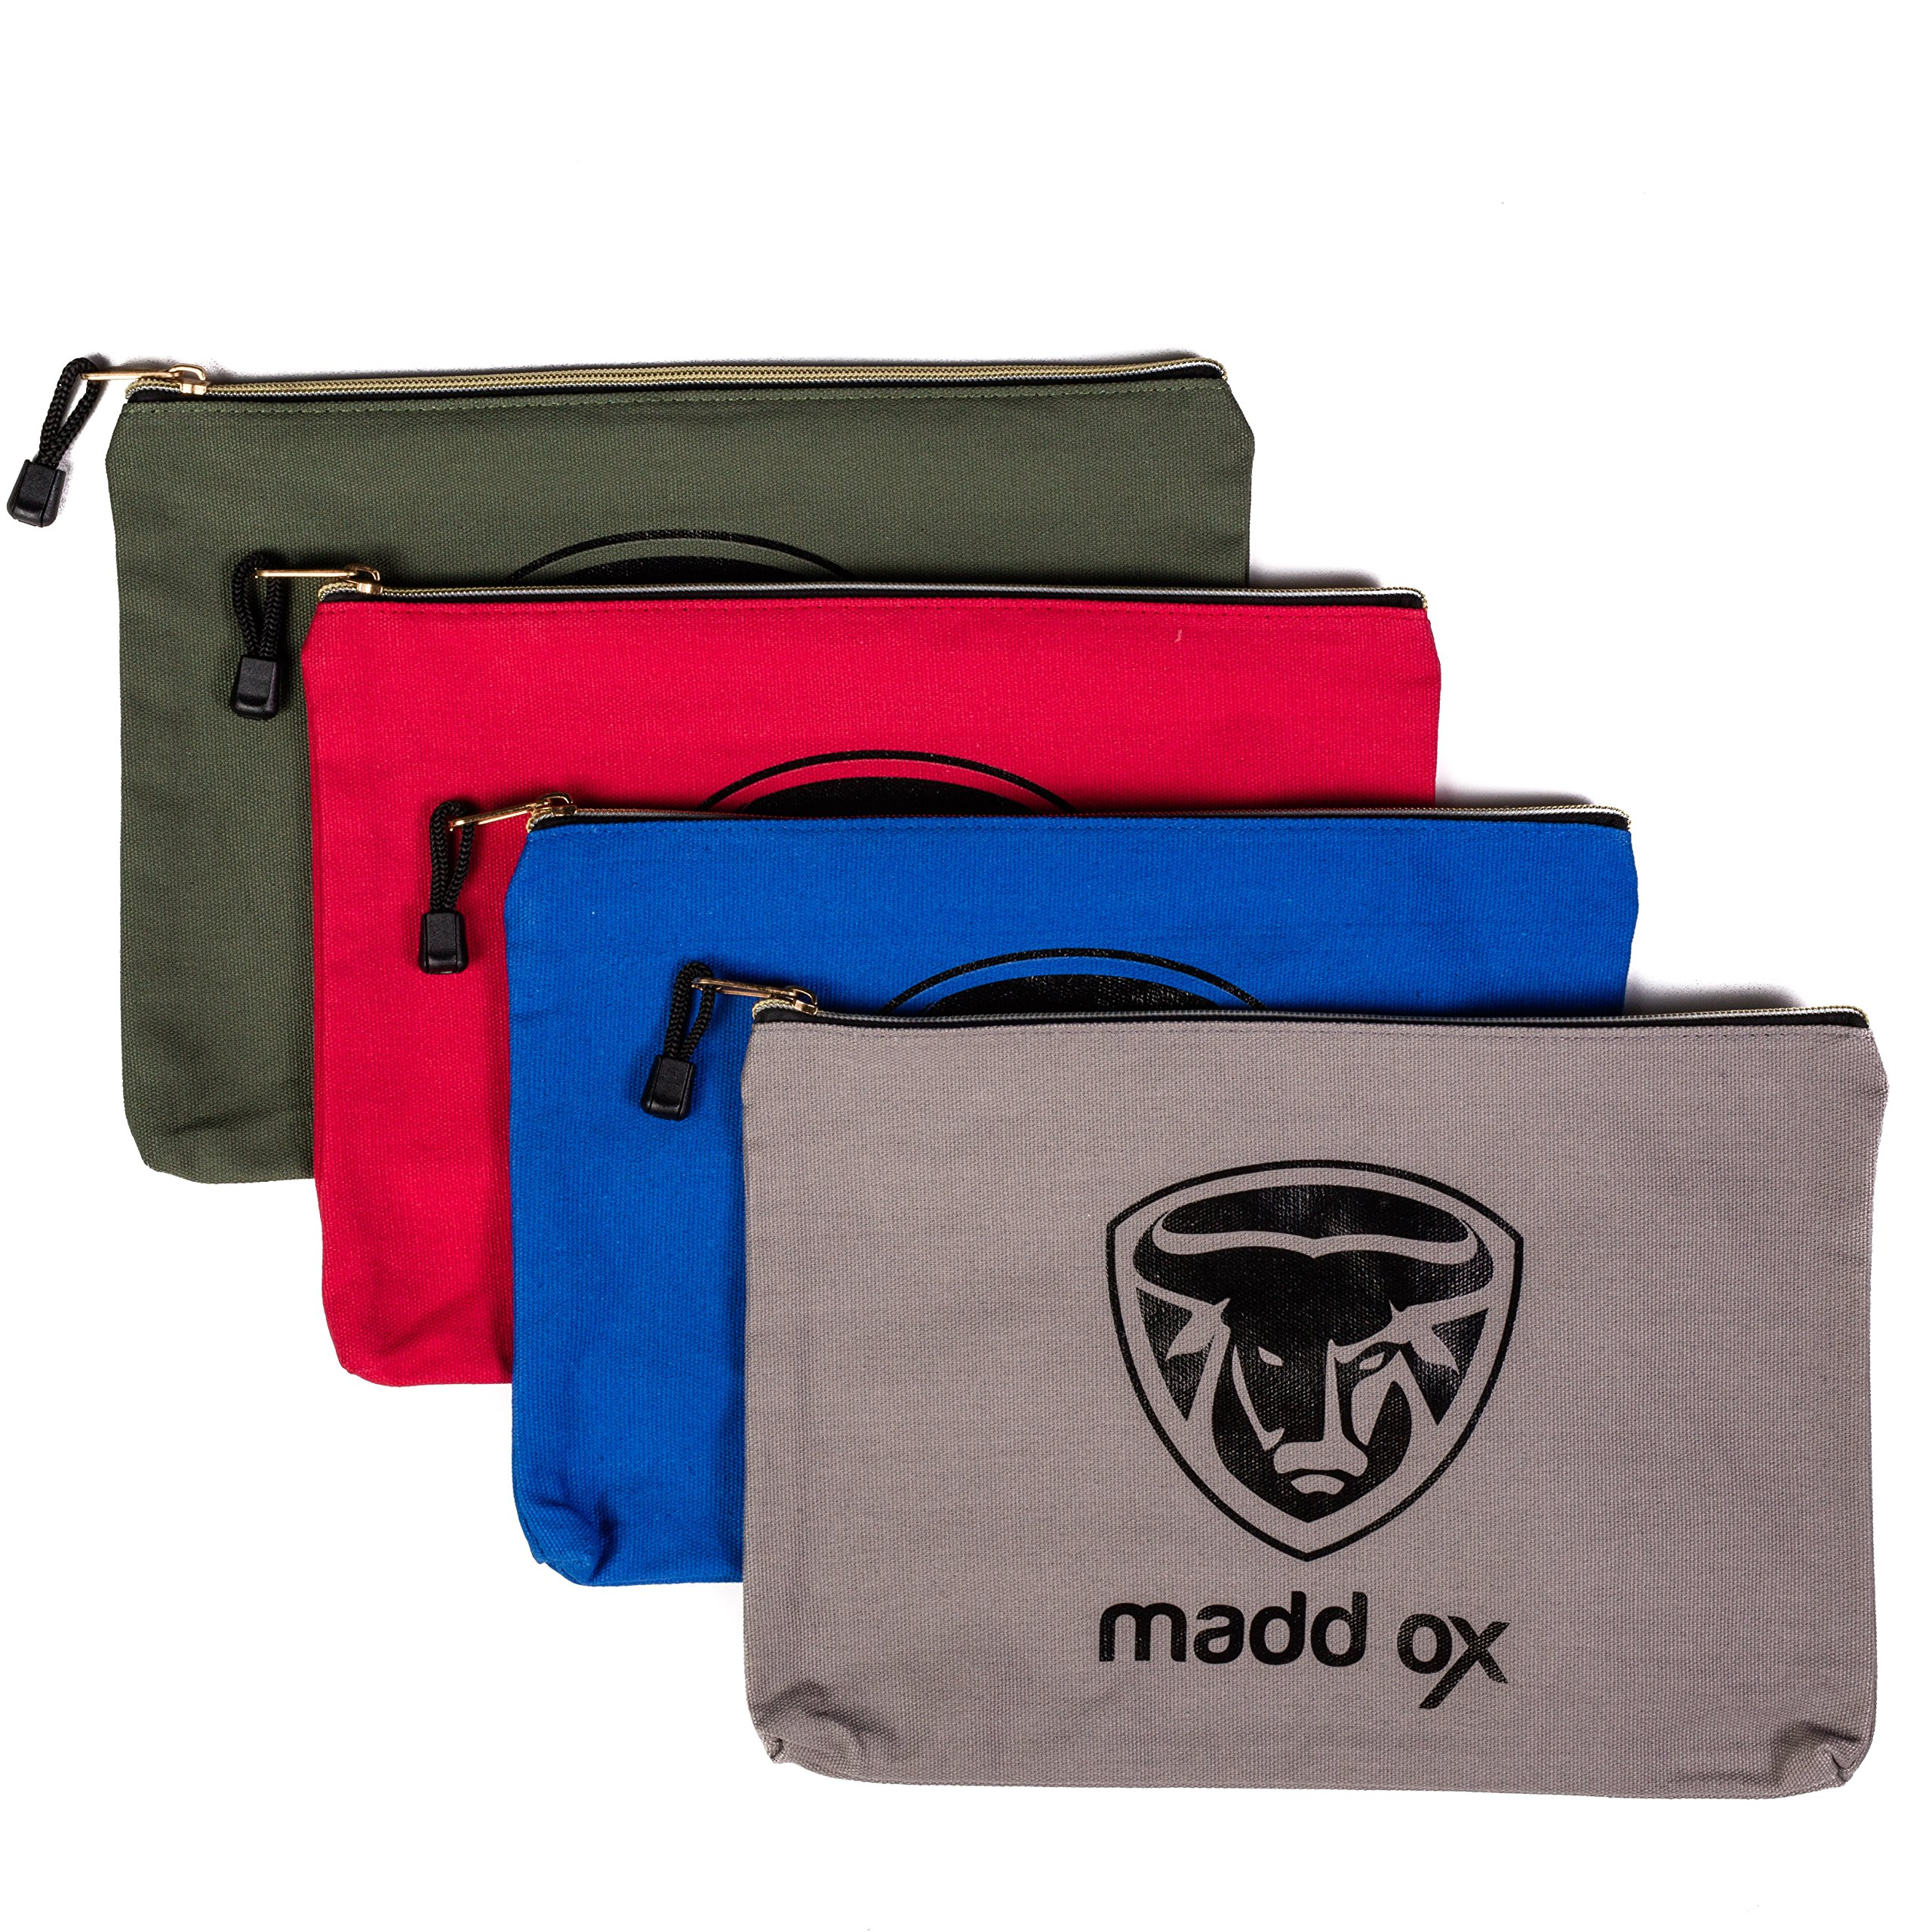 Canvas Zipper Tool Pouch Utility Bags 4 Pack - 16 oz. Heavy Duty Zippered Water Resistant - Multi-Purpose Storage Set Organizer for Handyman, Mechanic, Electrician, Carpenter, Construction For Men